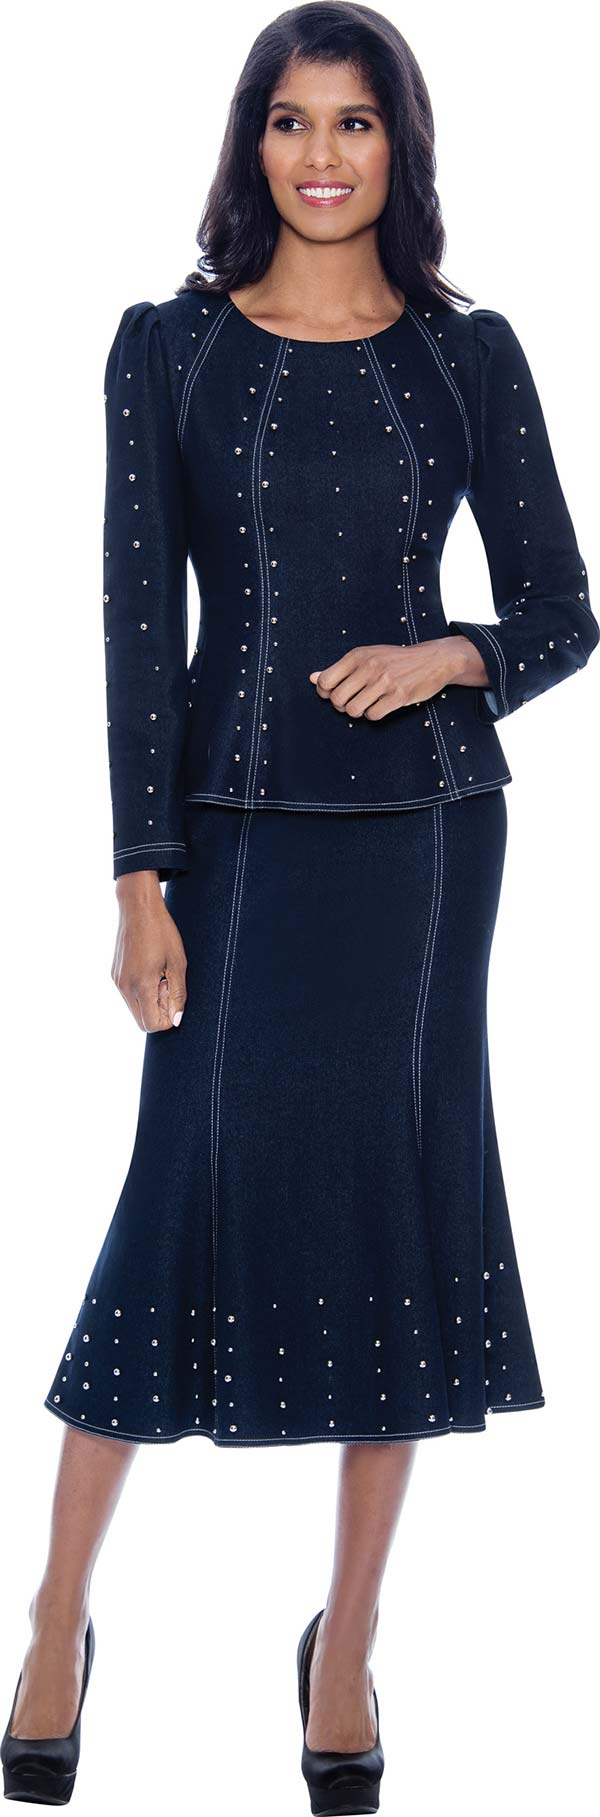 Devine Sport DS62762 - Soft Stretch Denim Flared Skirt Suit With Embellished Vertical Details